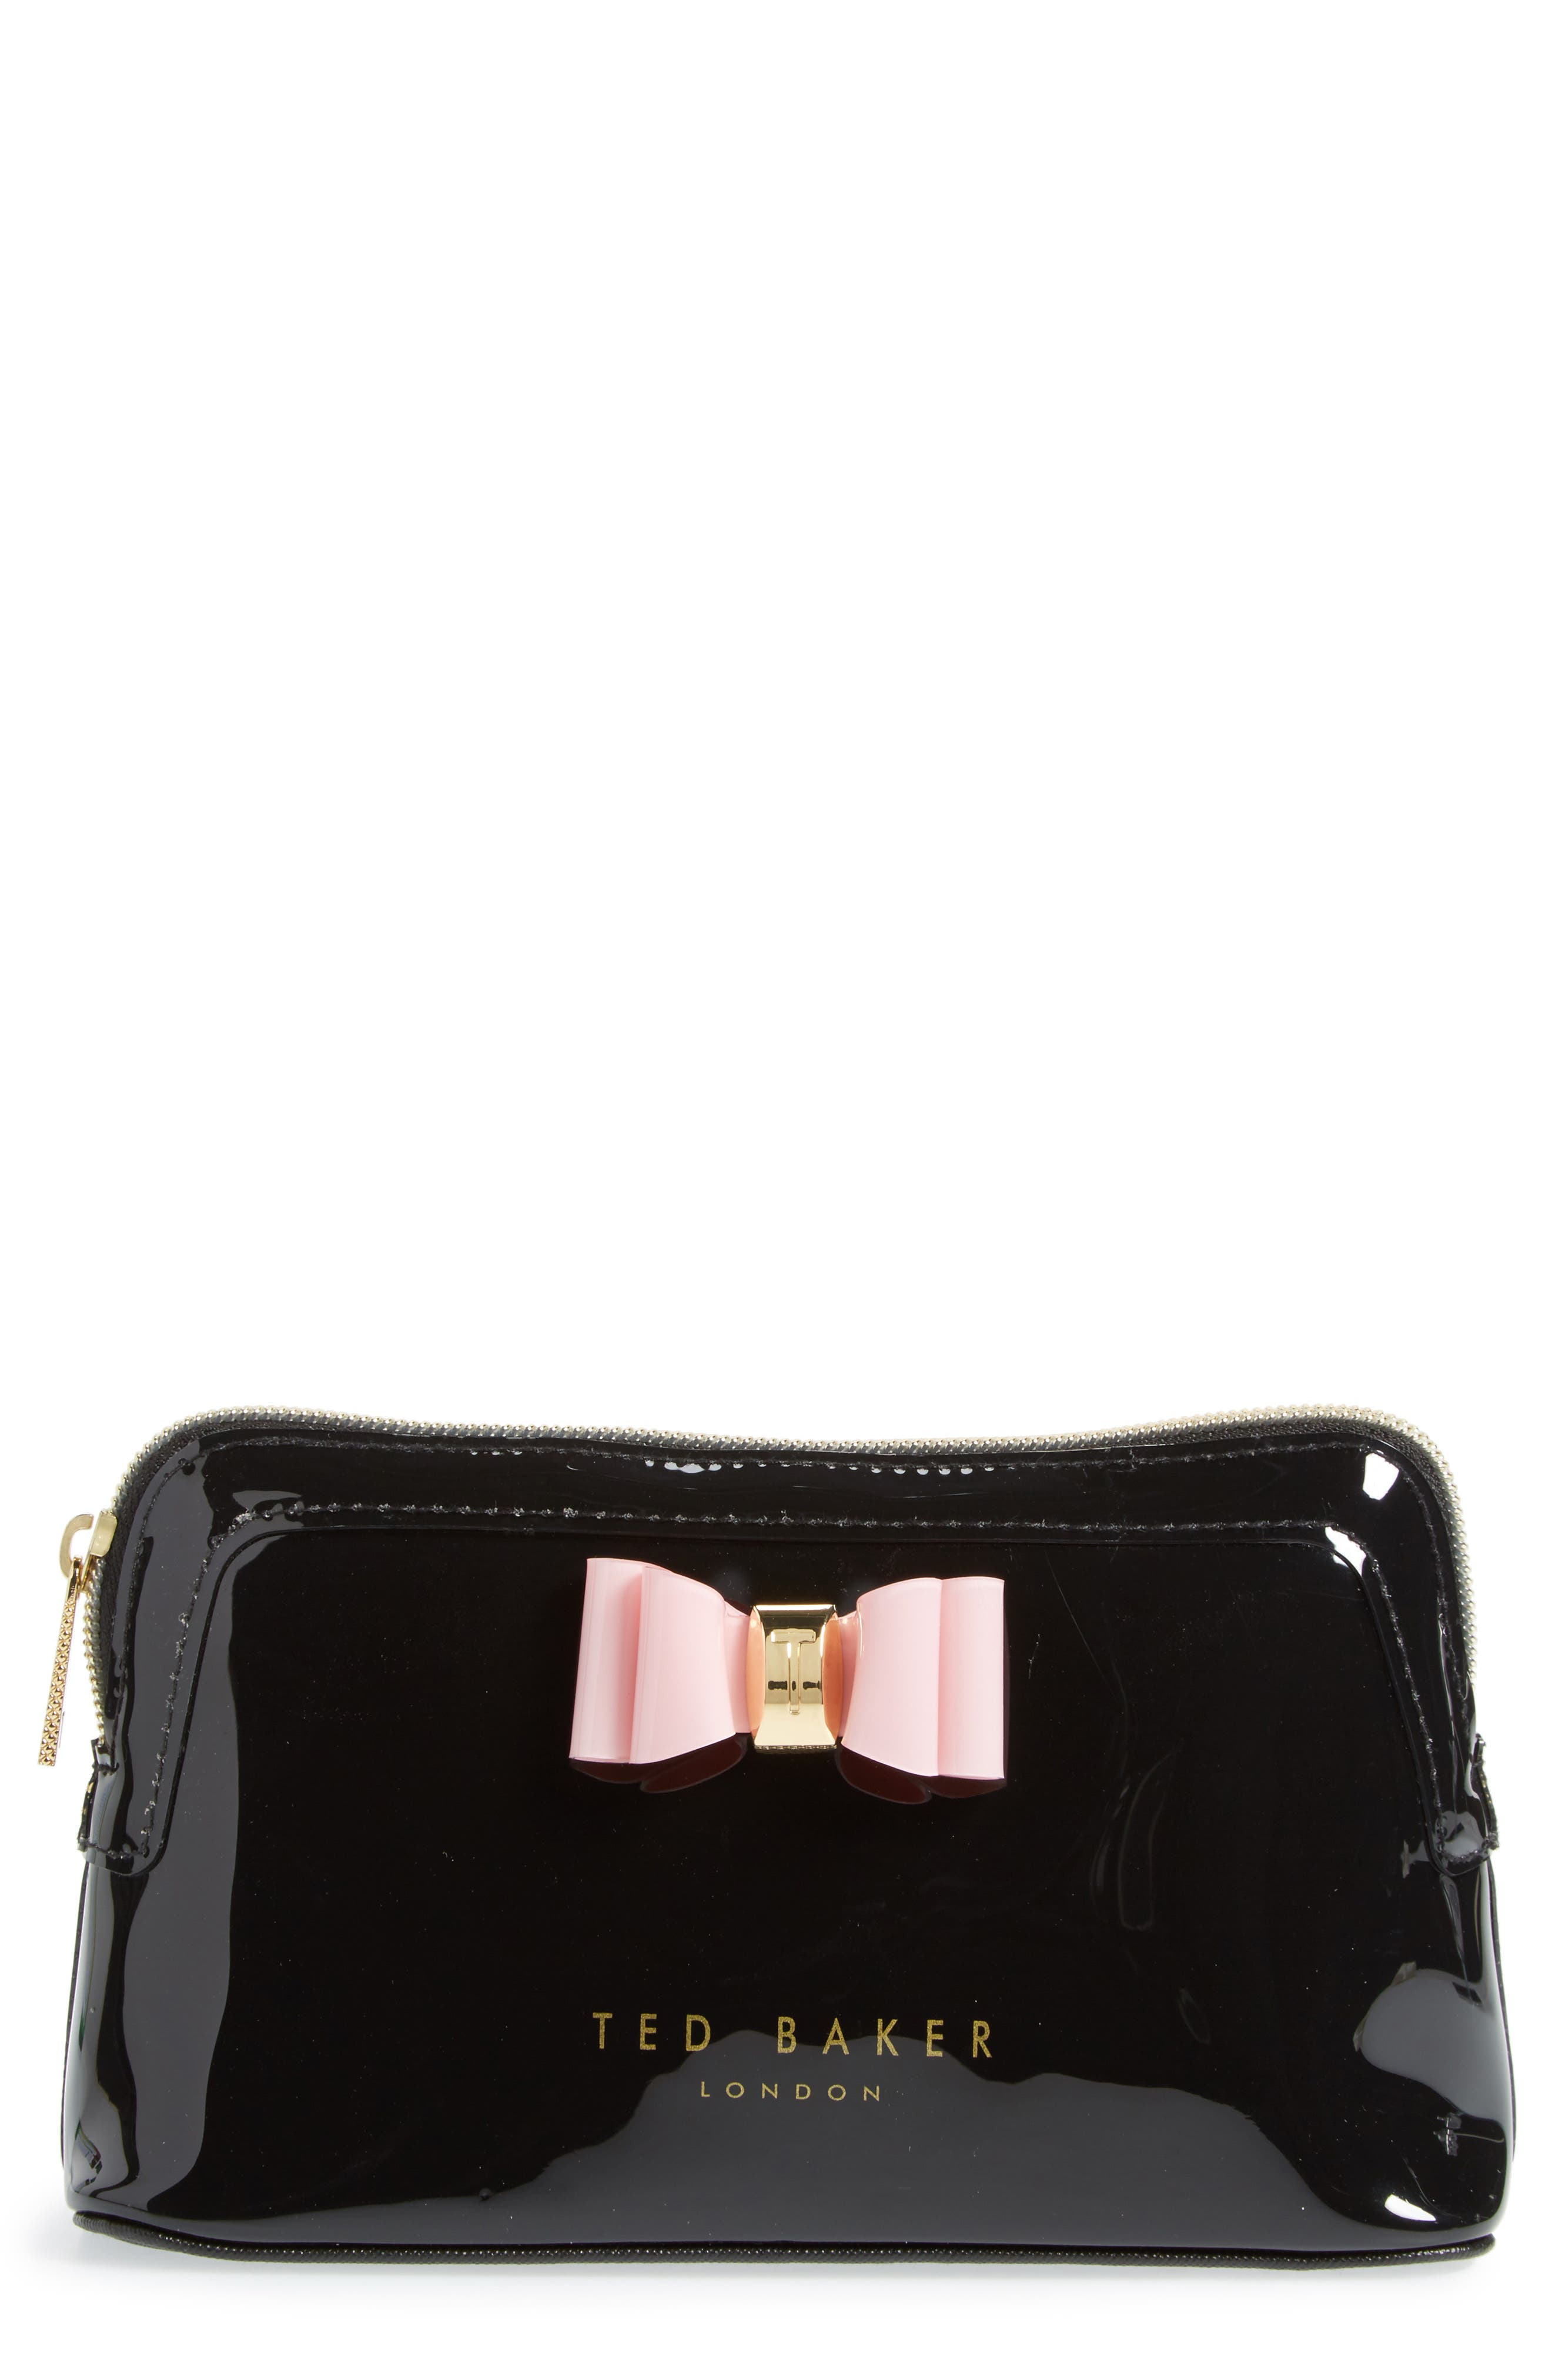 Ted Baker London Julis Bow Cosmetics Bag